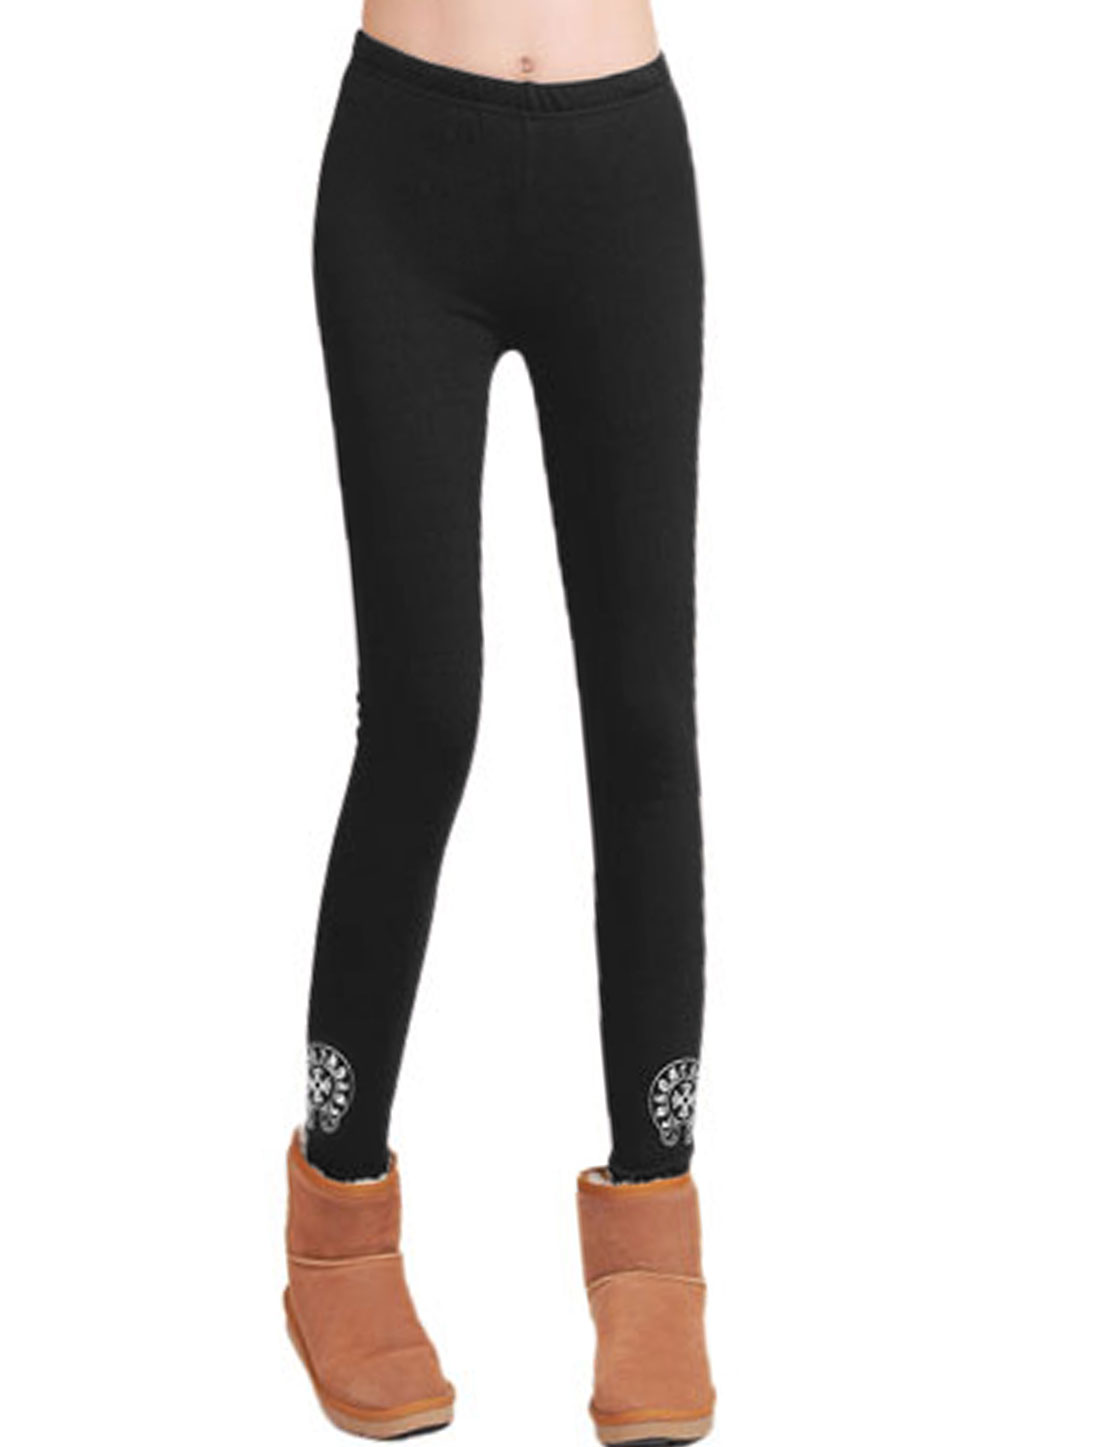 Ladies Black Elastic Stretchy Mid Rise Novelty Prints Leggings XS